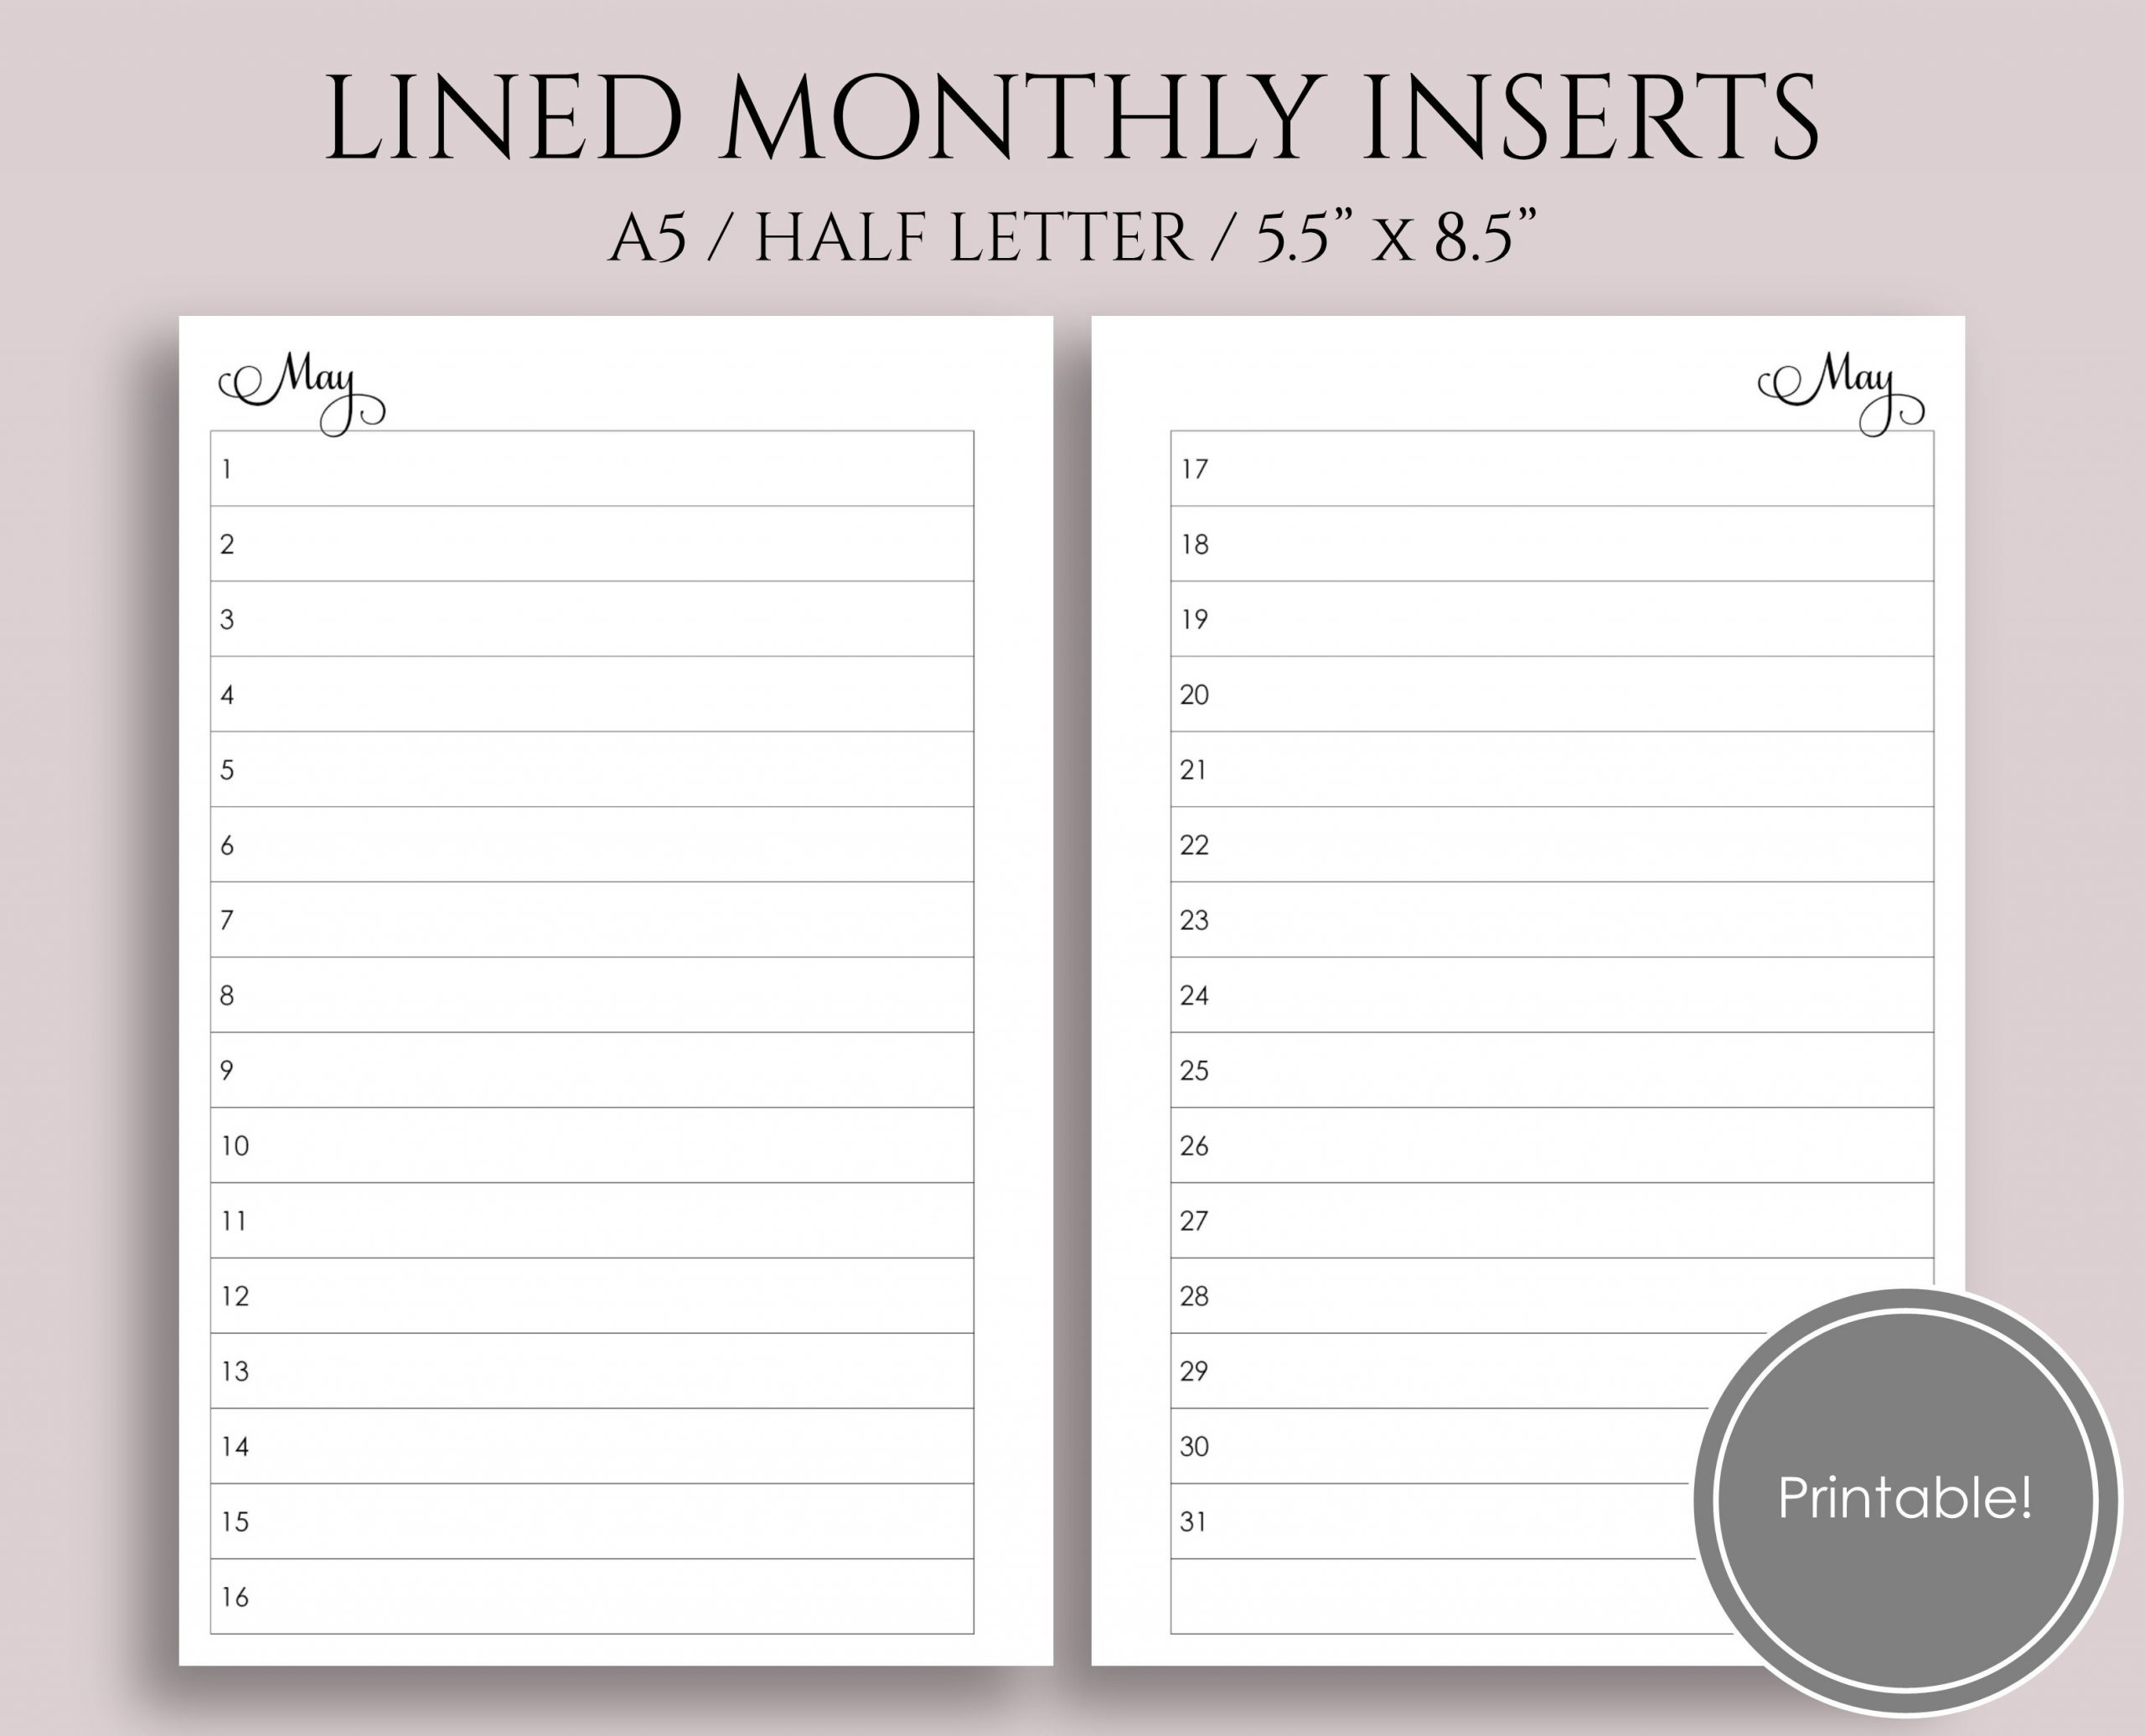 Printable Lined Monthly Calendar | Calendar For Planning Free Printable Lined Monthly Calendars